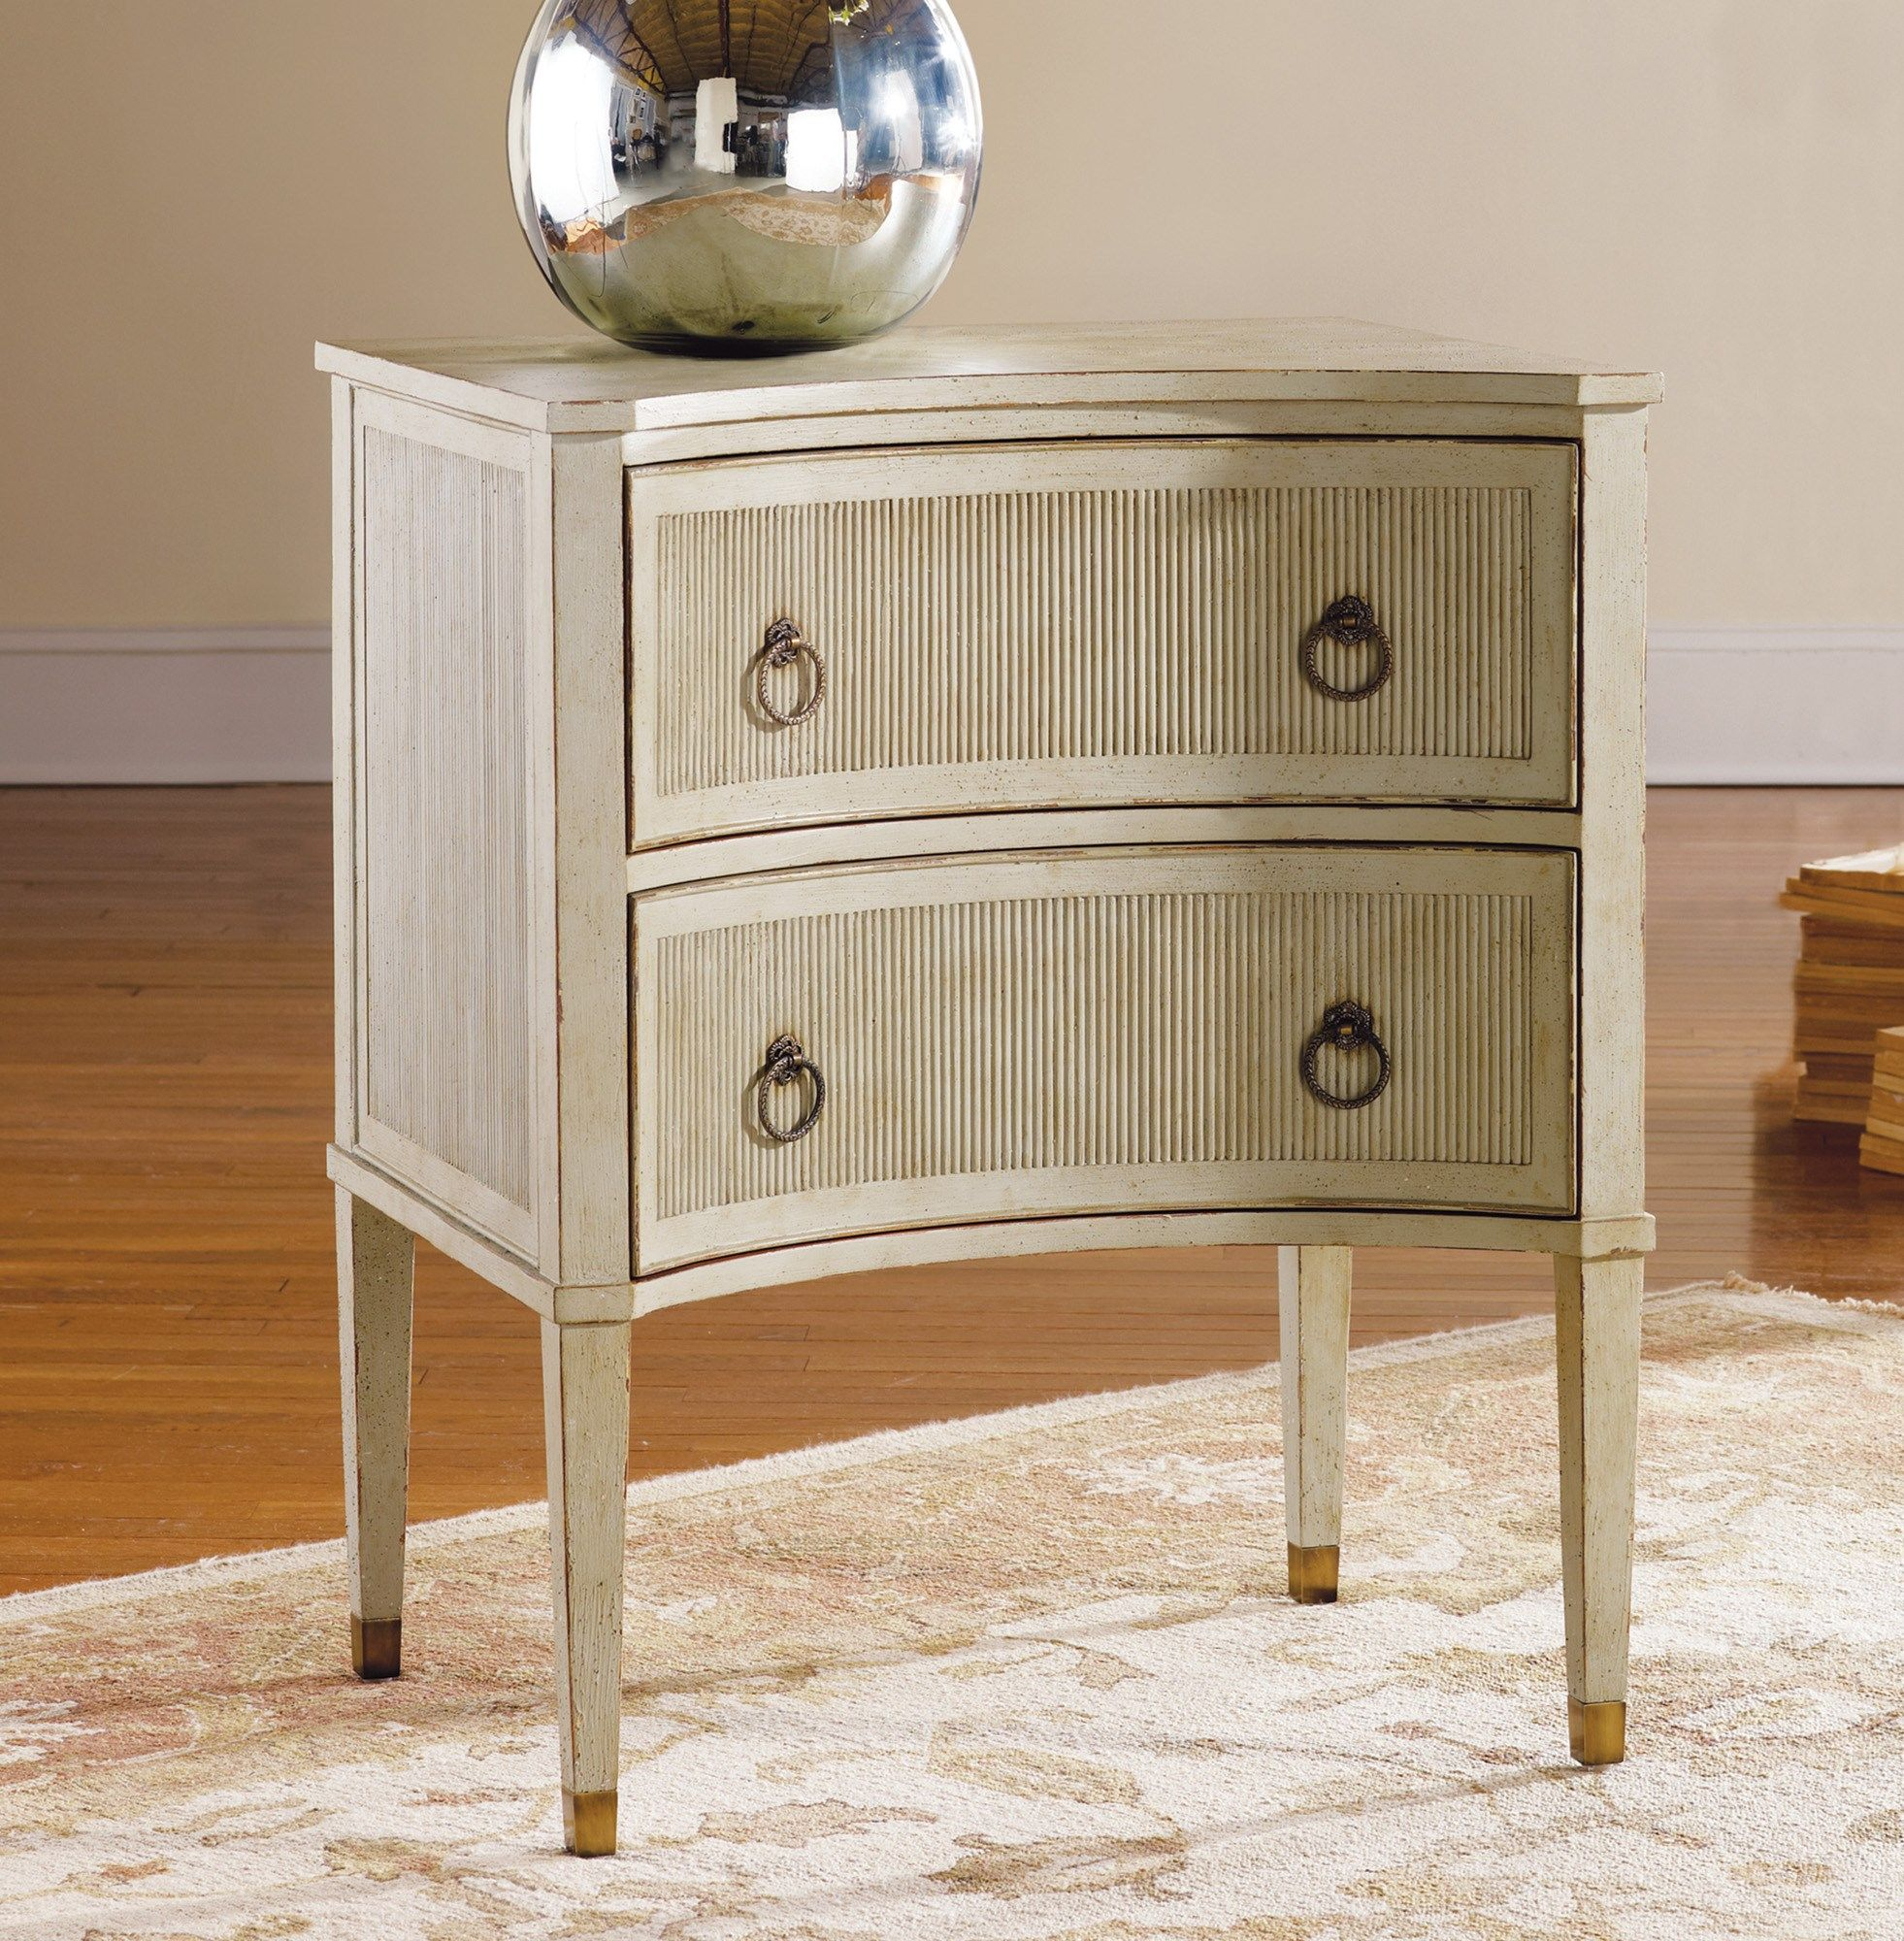 Painted Gustavian Bedside Chest Chests Modern History